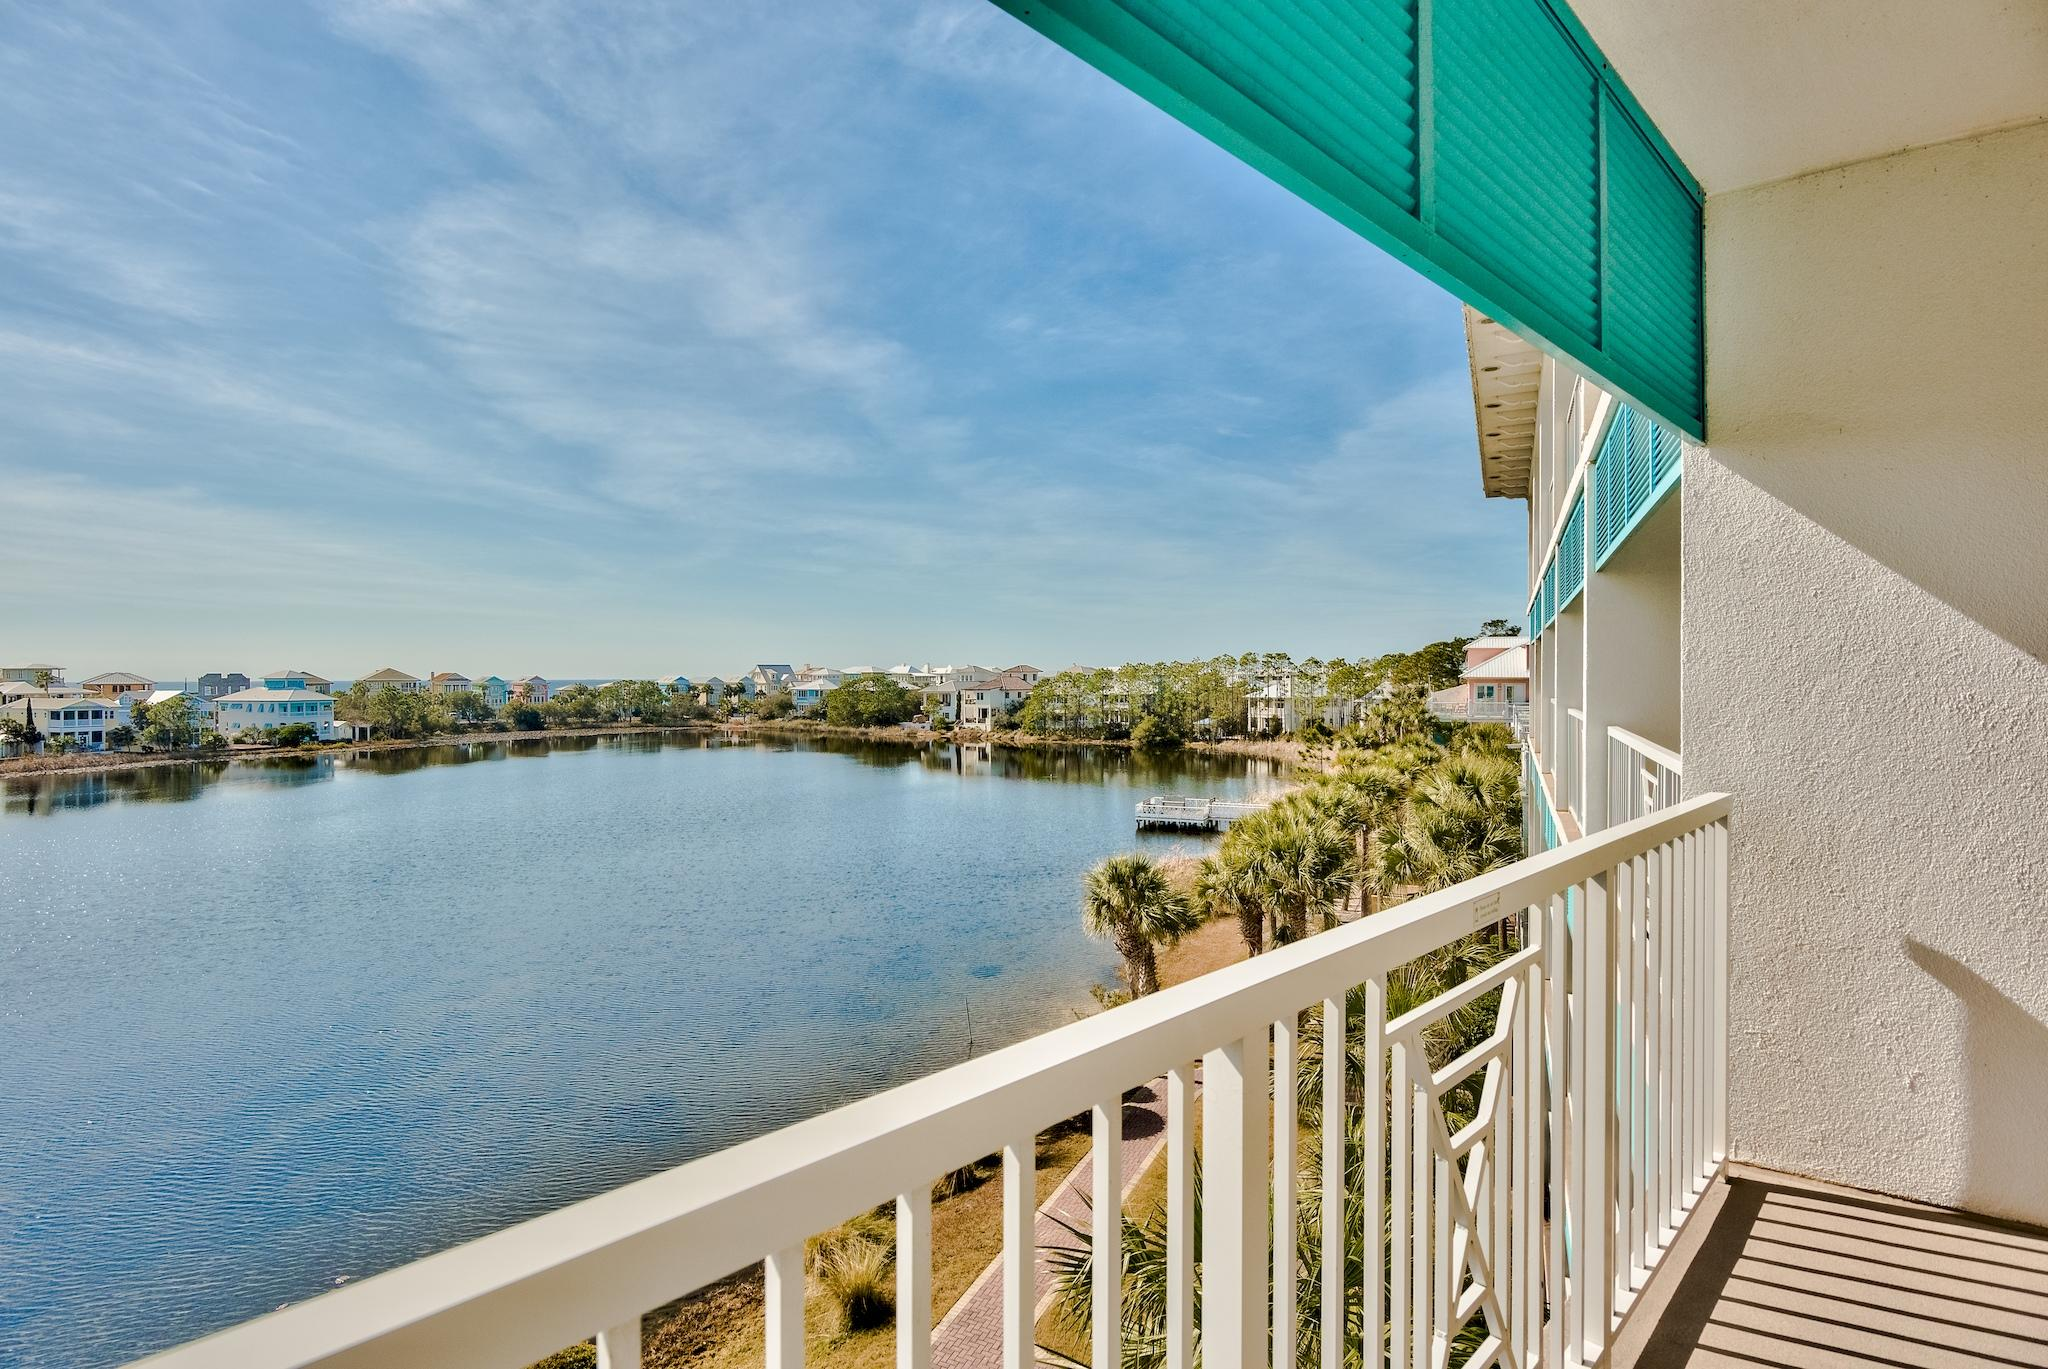 Carillon Beach Inn is perfectly located on the west end of Panama City Beach with quick access to Pi